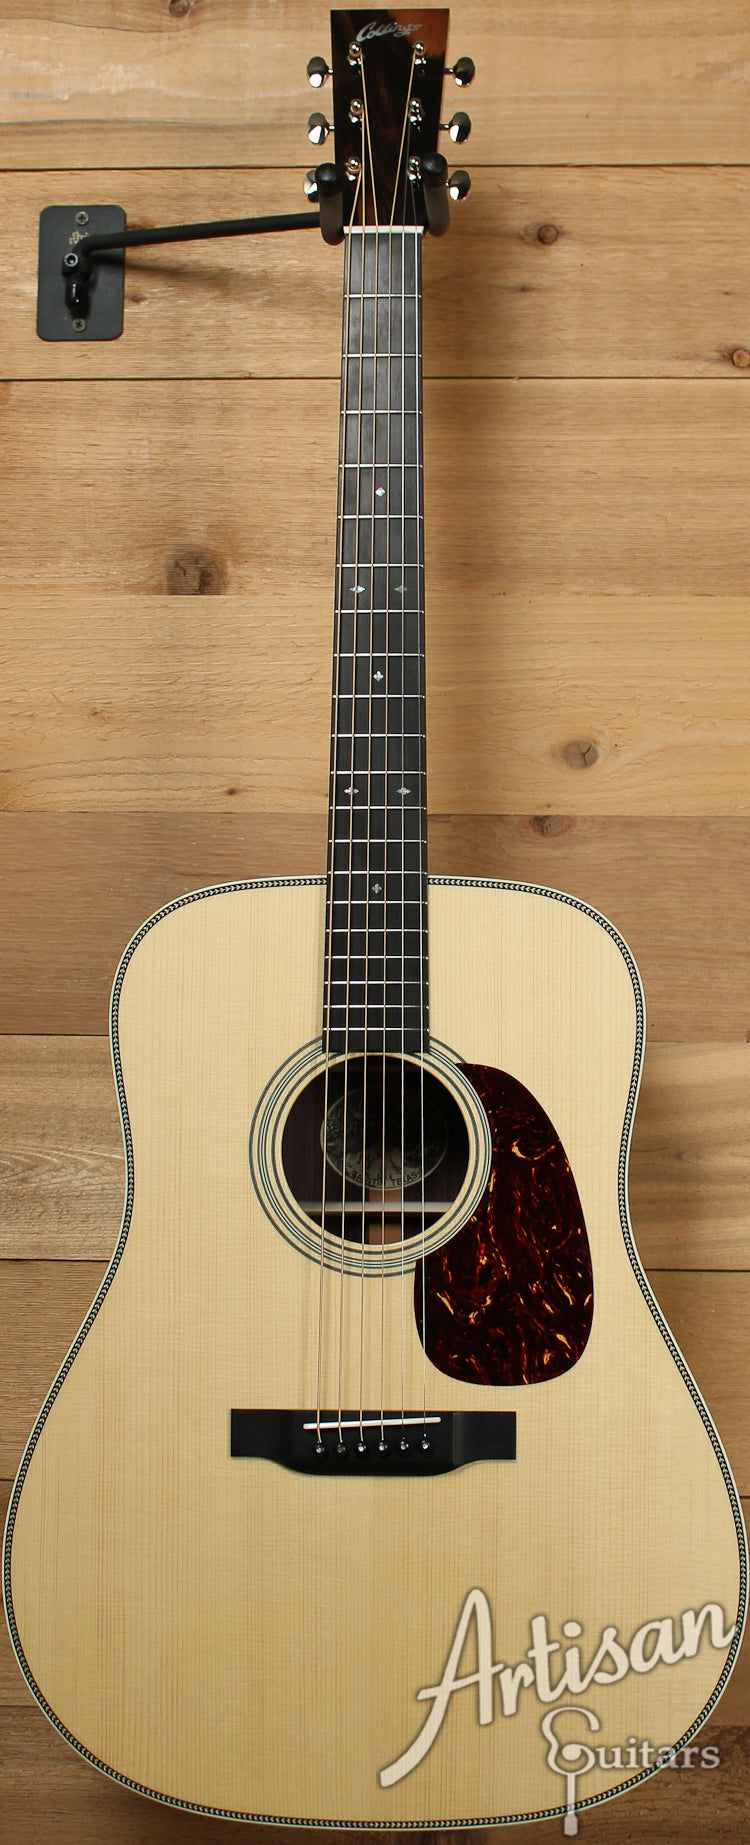 Pre Owned 2013 Collings D2HA Adirondack Spruce and Indian Rosewood with Adirondack Braces ID-7332 - Artisan Guitars